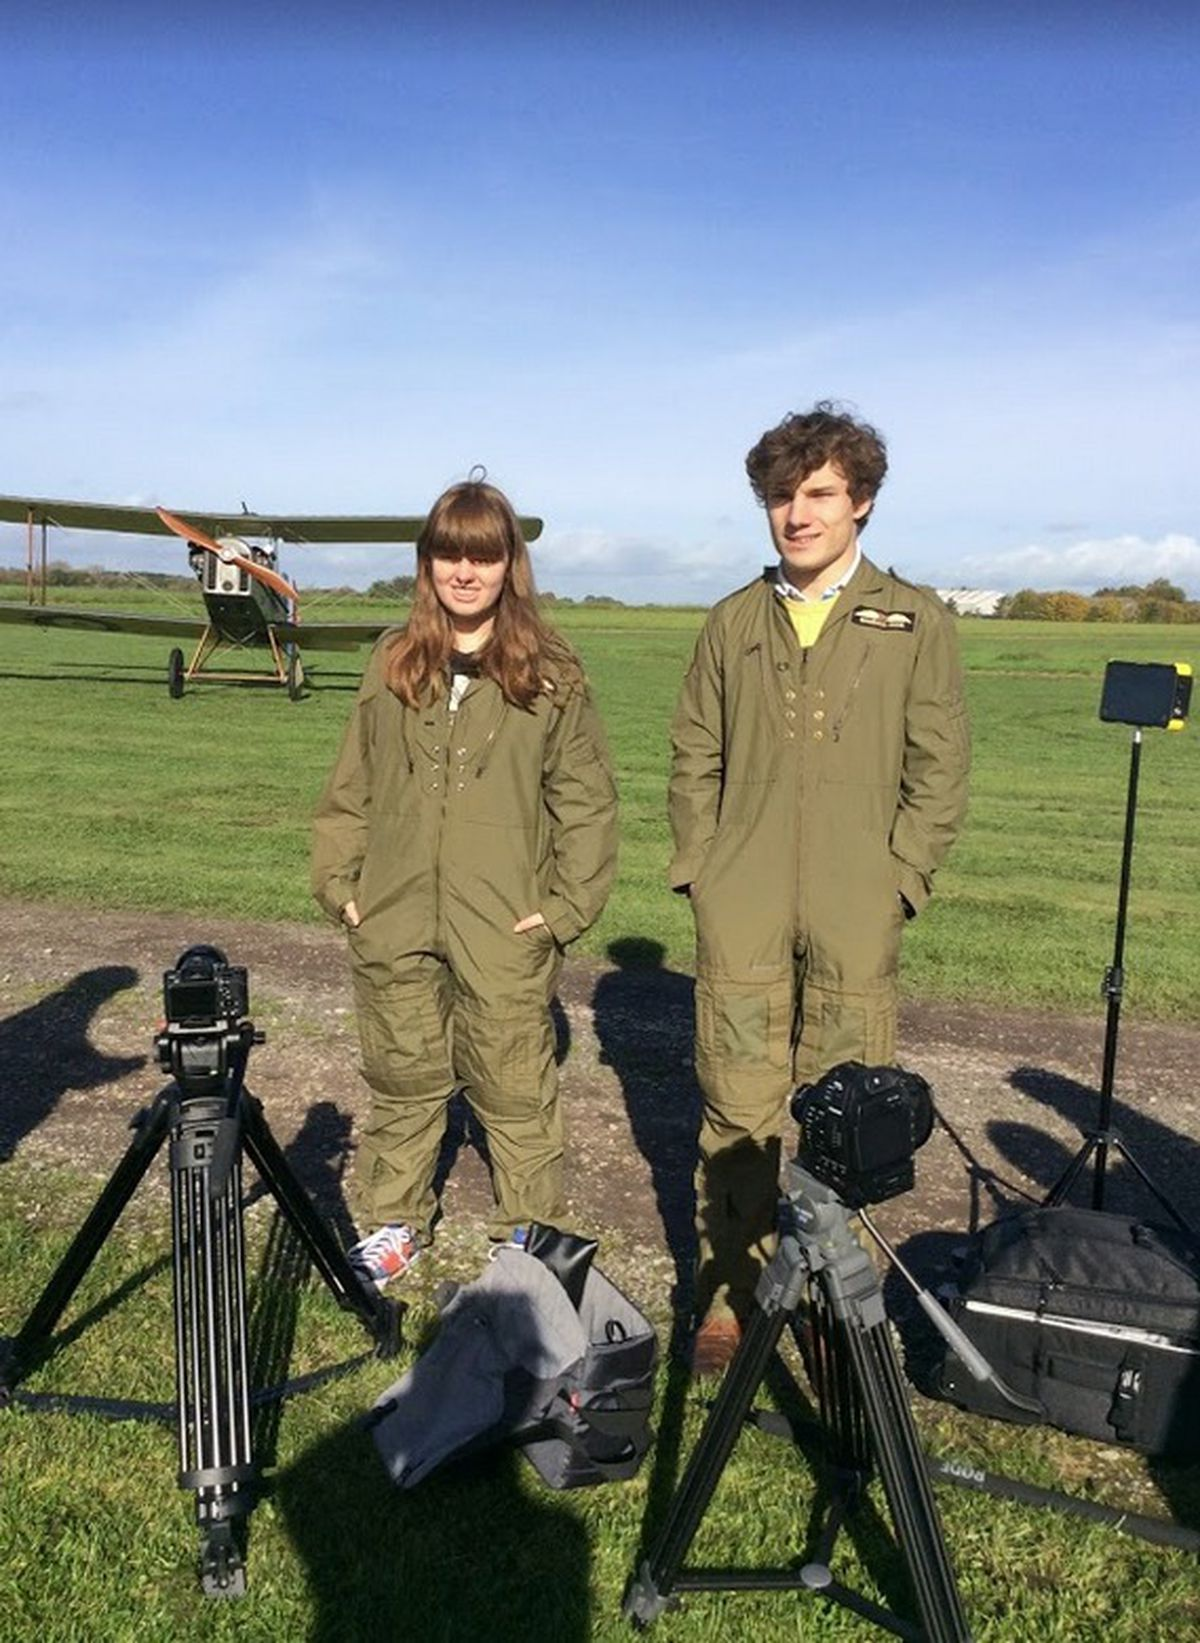 Rory Blessington, 18, and Heather Mager, 17, at Otherton Airfield in Staffordshire